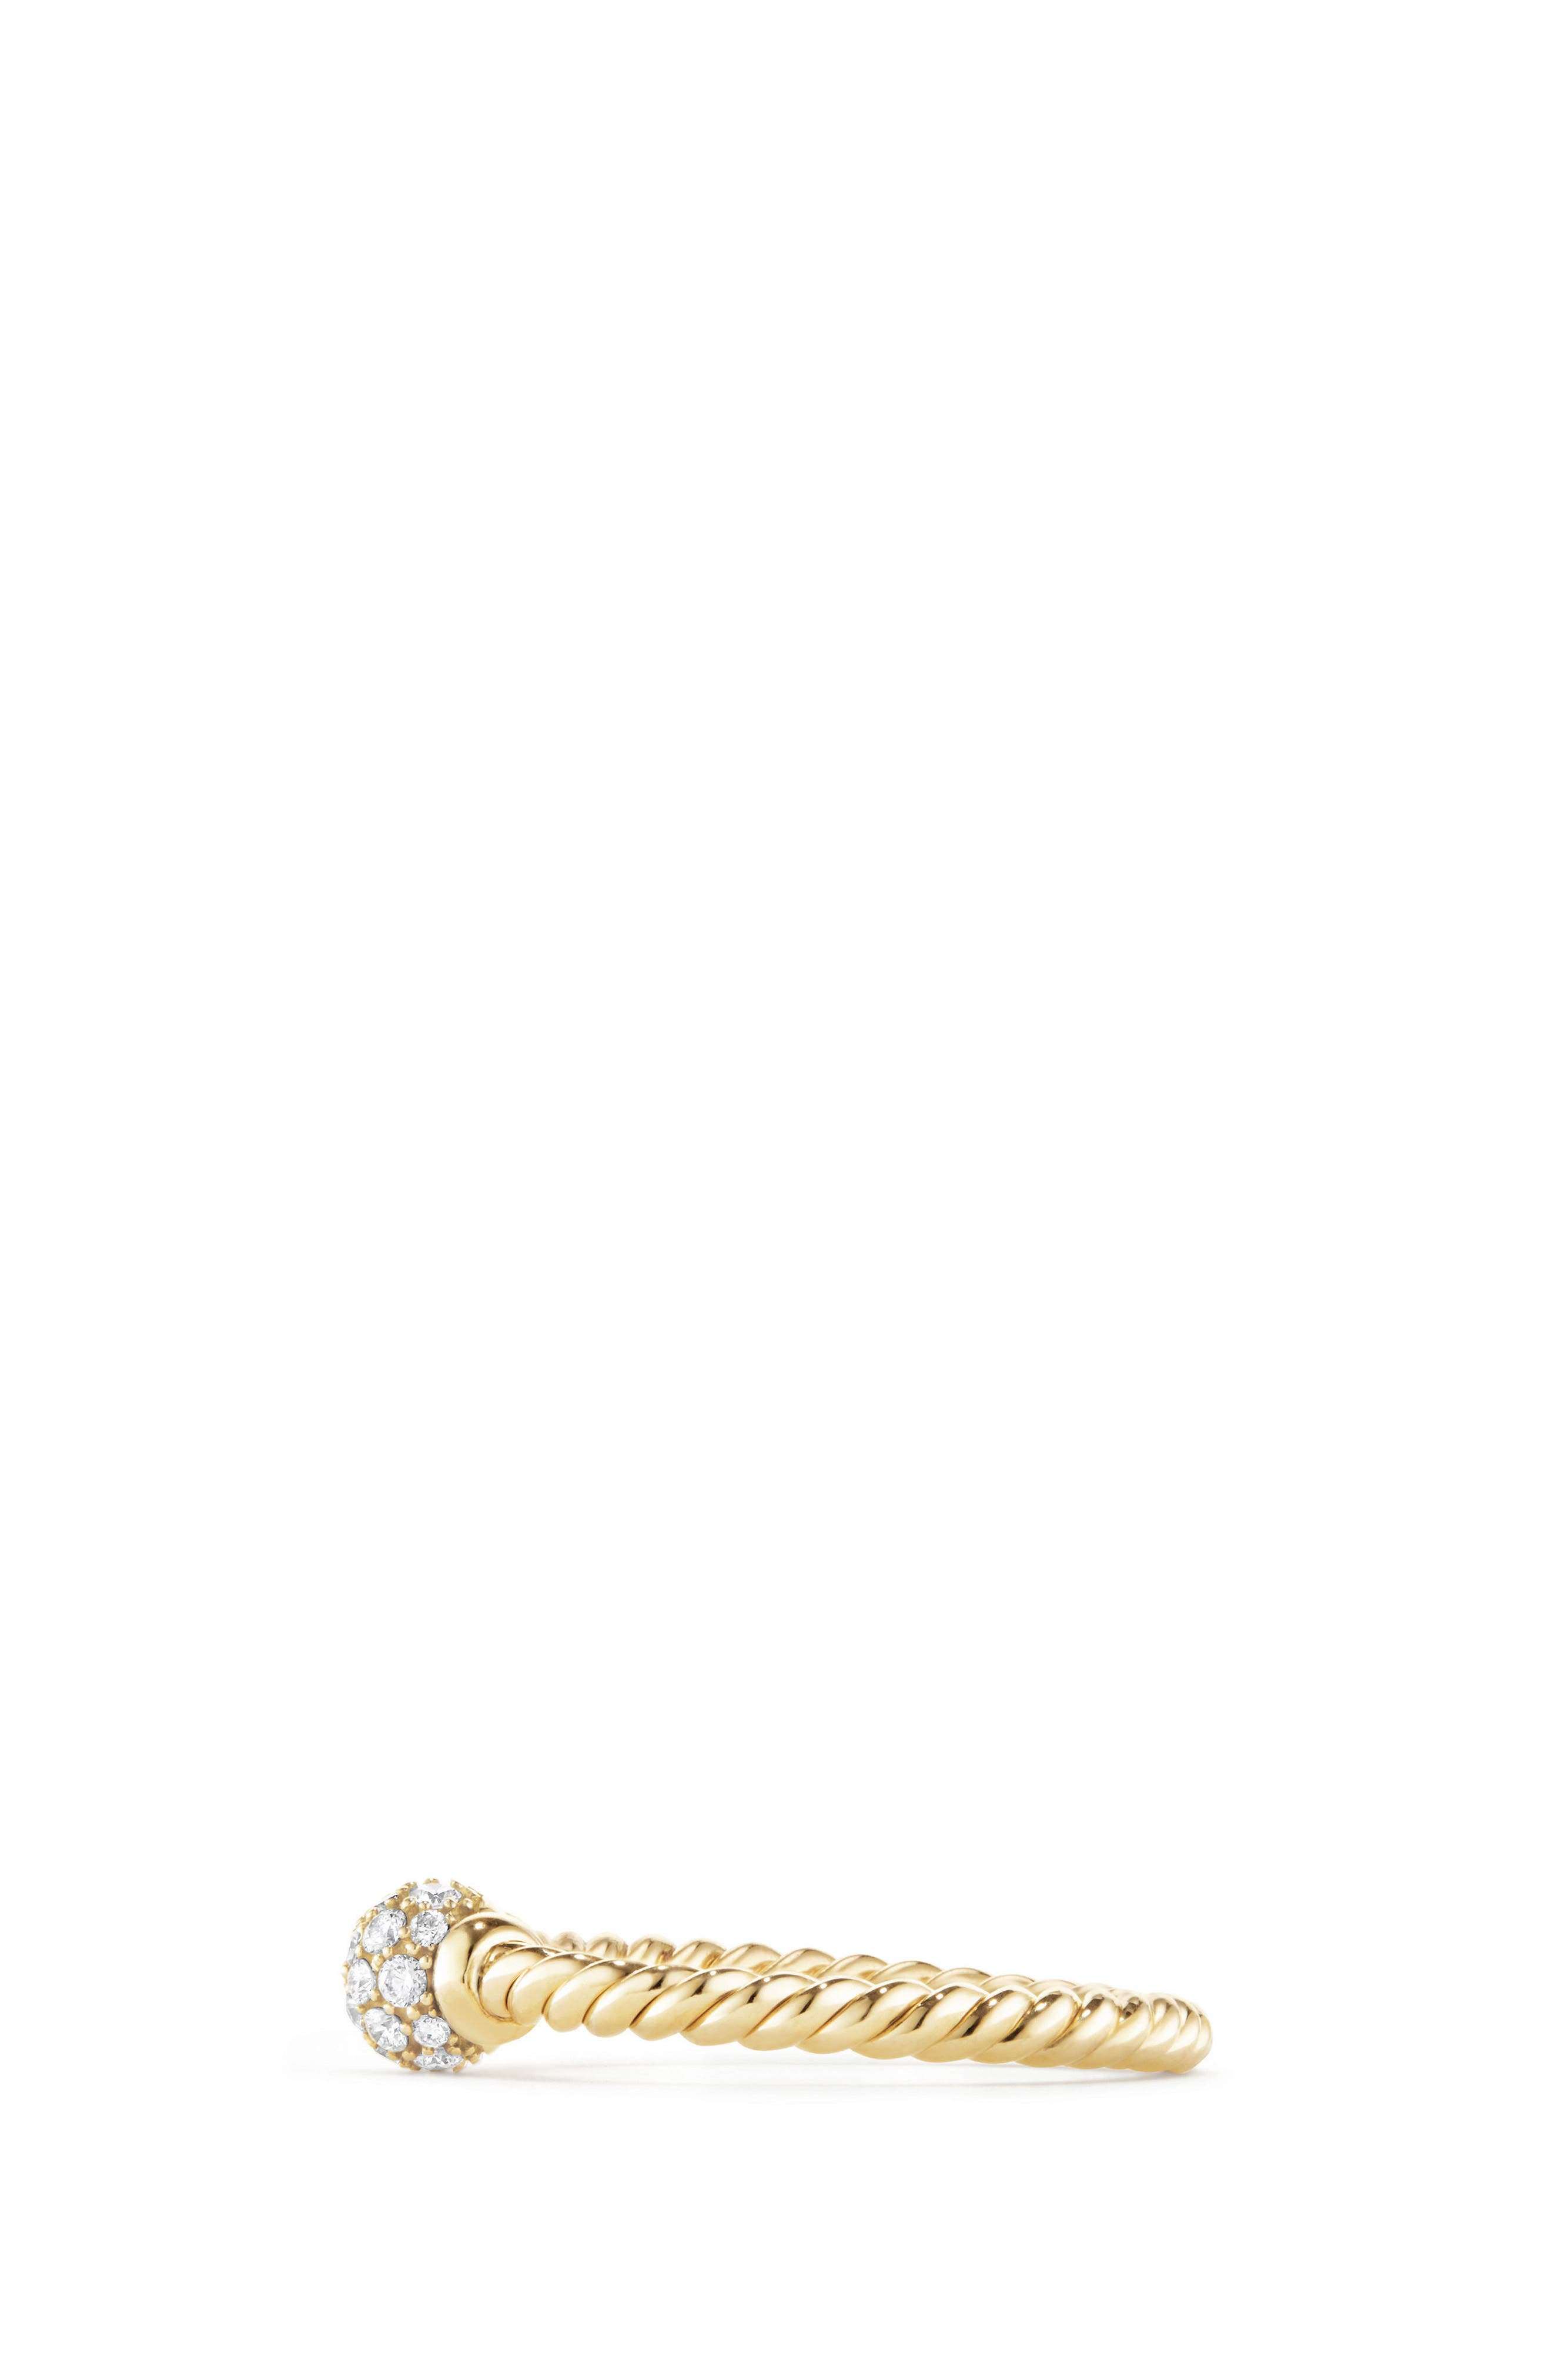 Solari Station Ring with Diamonds in 18K Gold,                             Alternate thumbnail 3, color,                             Yellow Gold/ Diamond